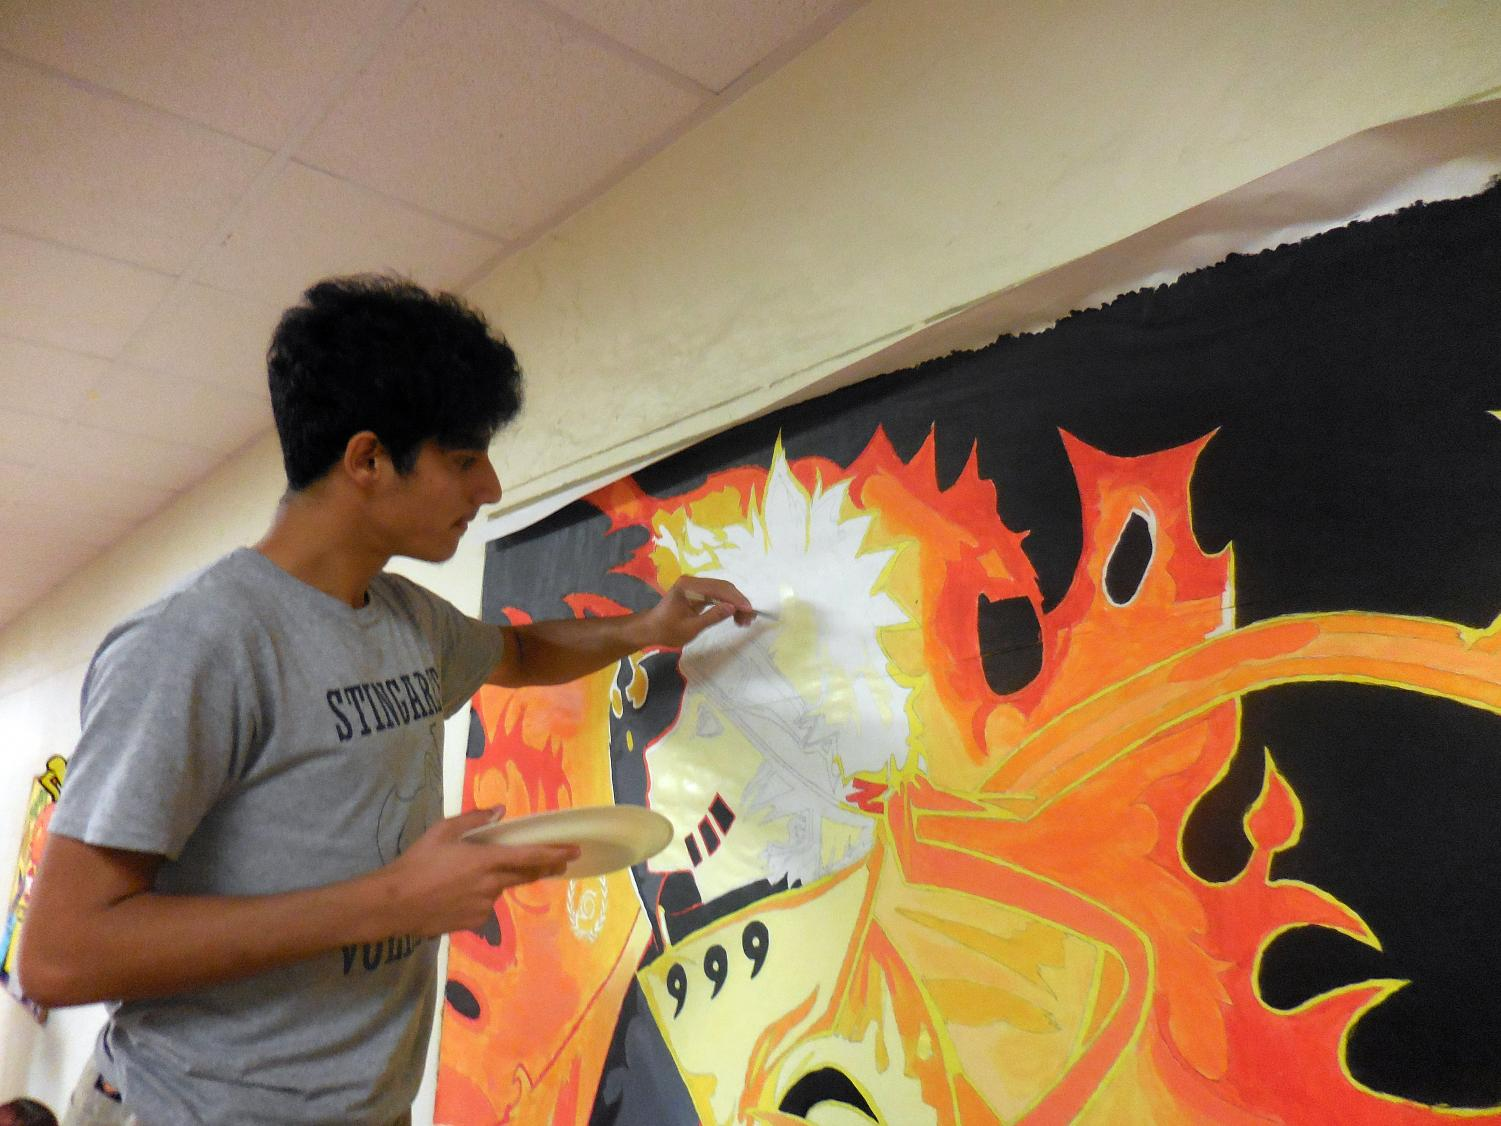 Senior Rolando Herrera adds the finishing touches to his vibrant orange-and-black painting of Naruto